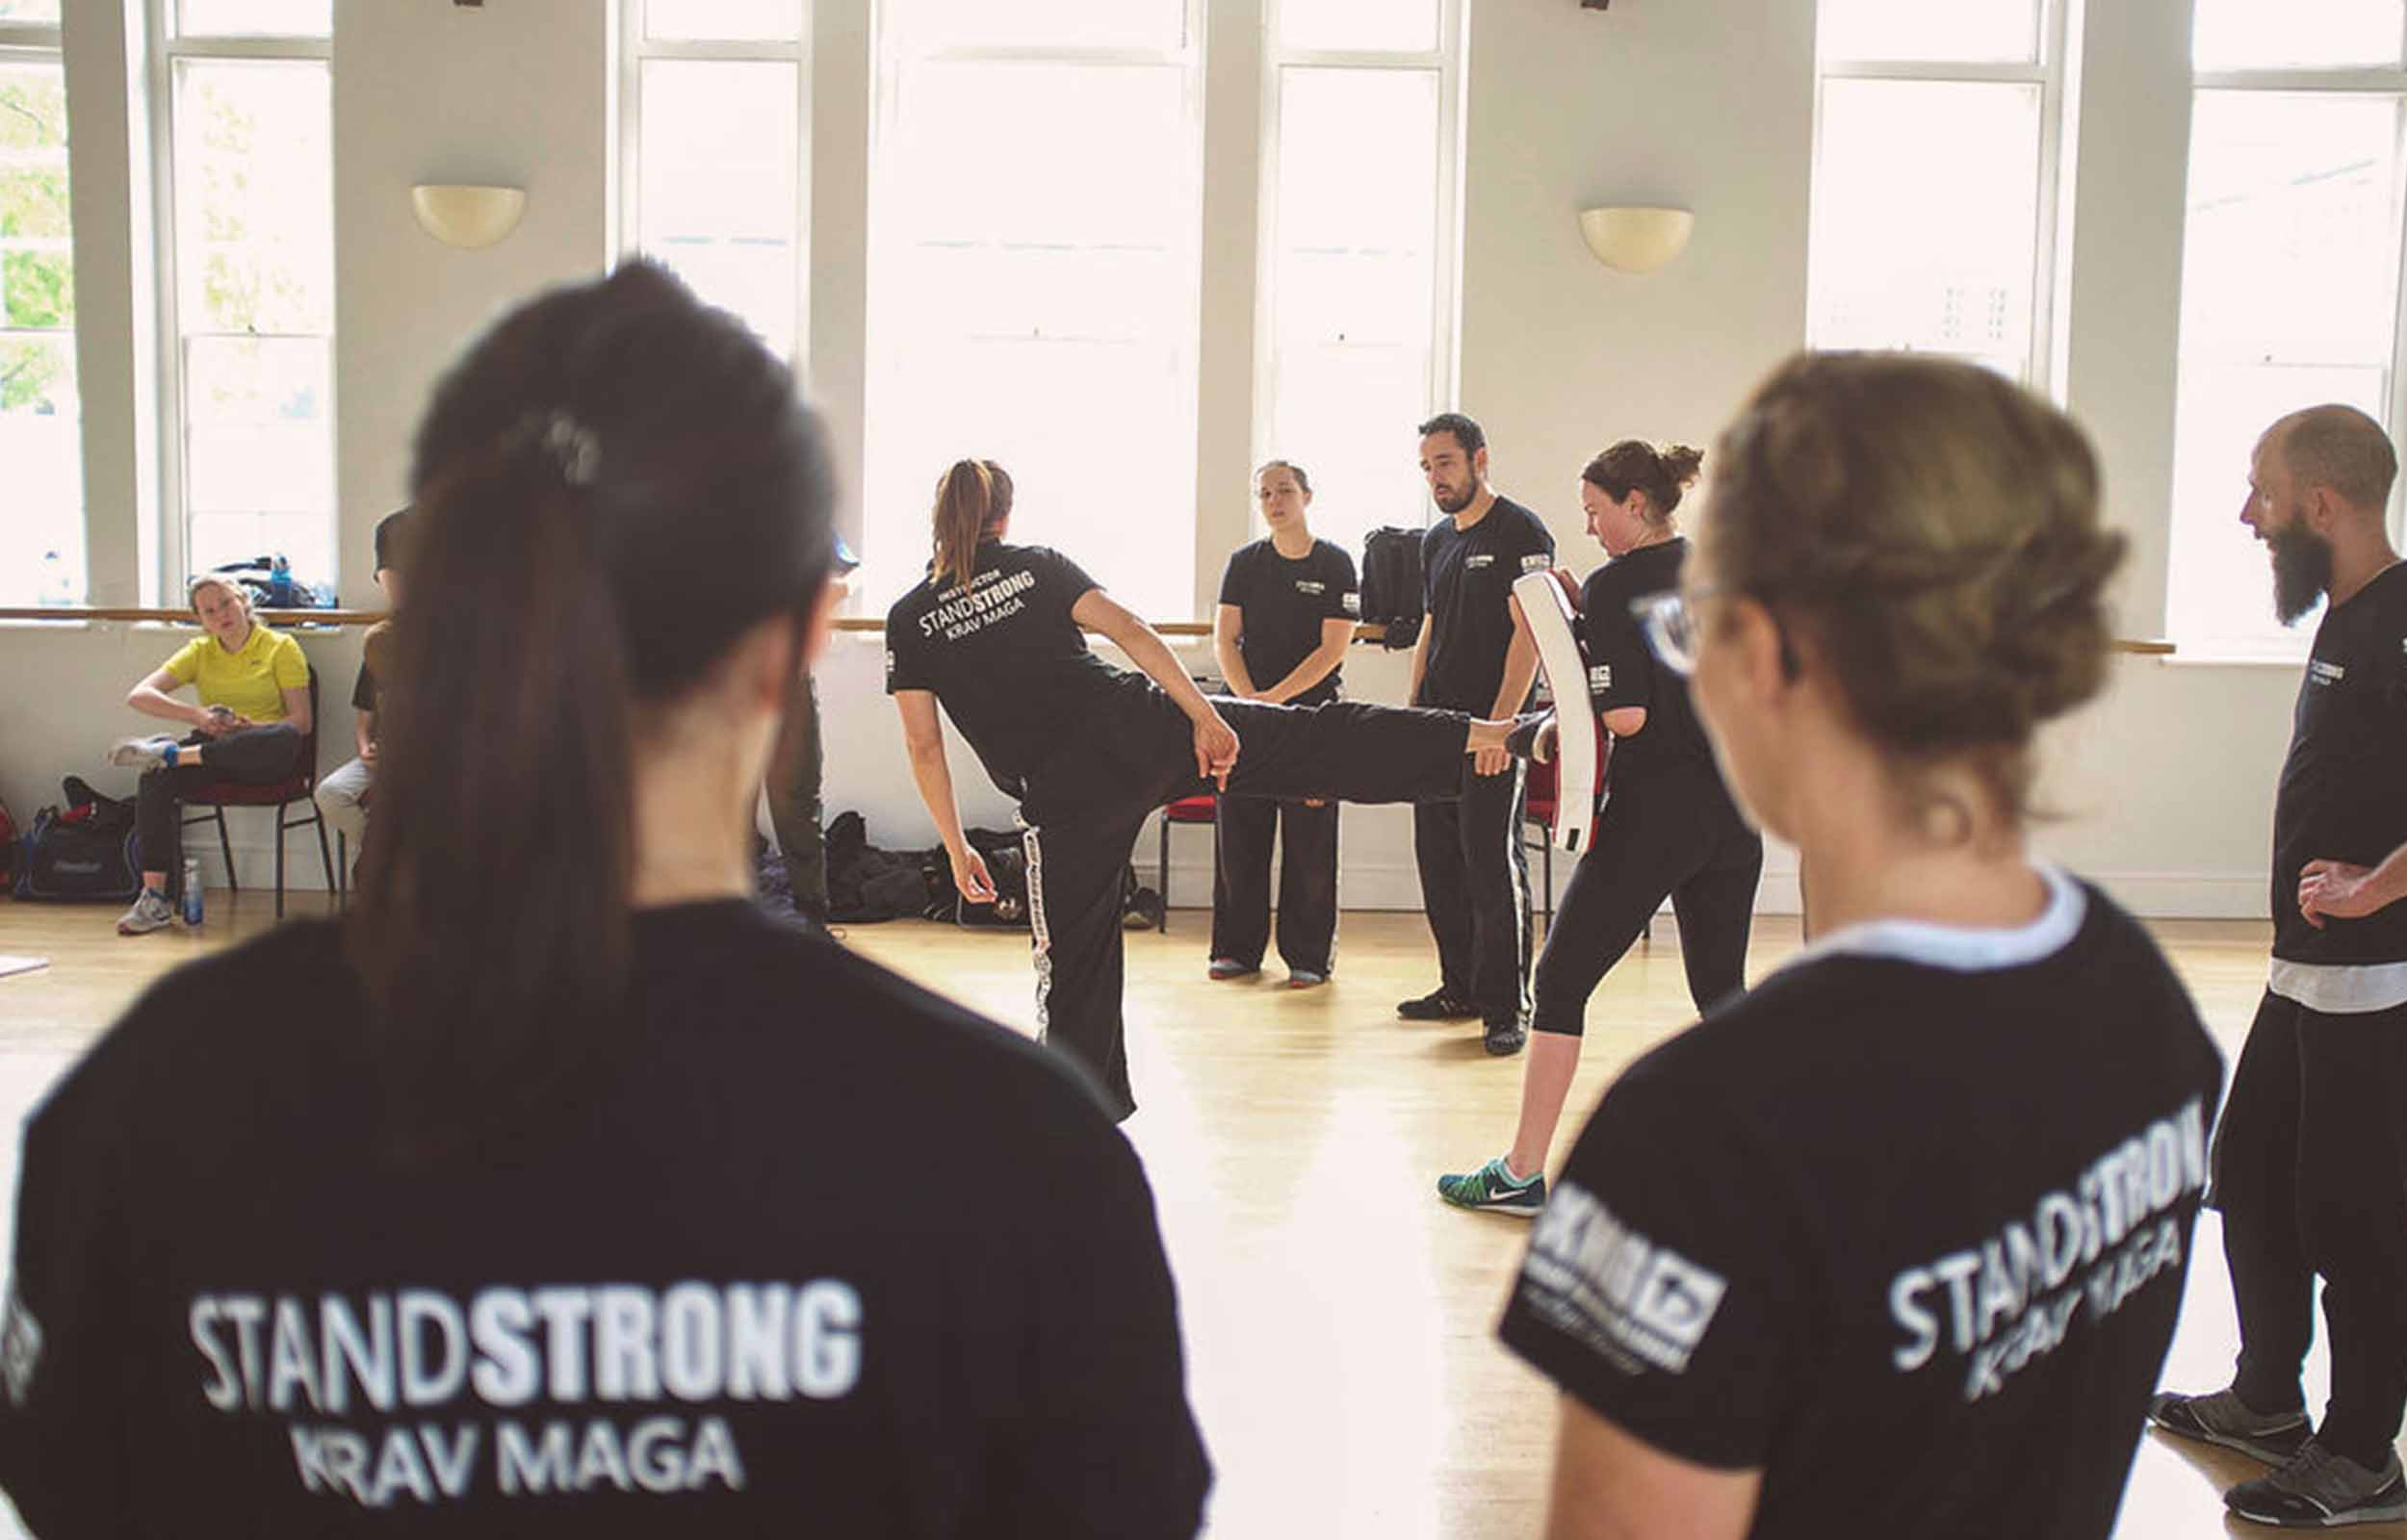 Krav Maga self-defence classes in Bristol